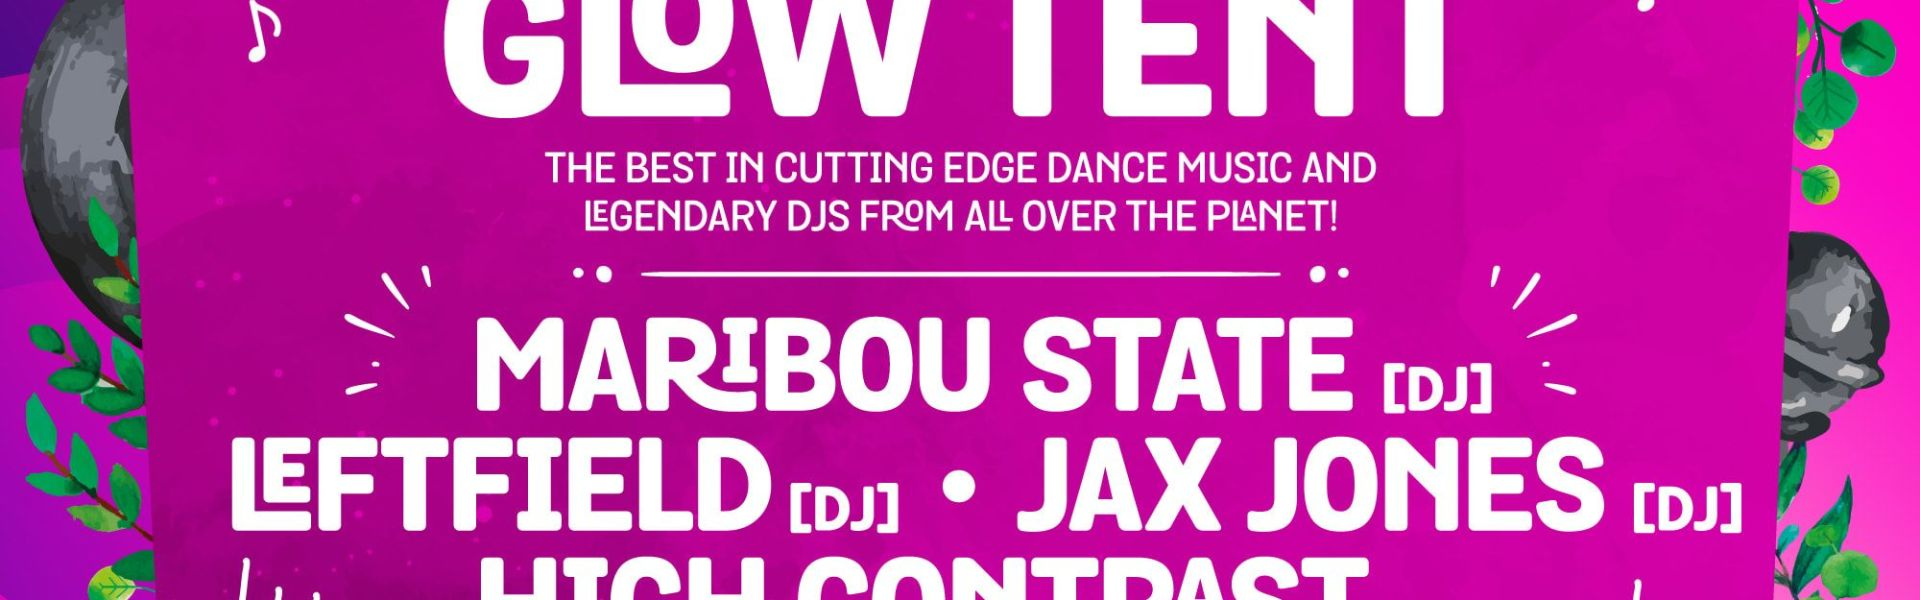 From Maribou State [DJ] and High Contrast [DJ] to Darkzy and Monki - DJ, don't m...